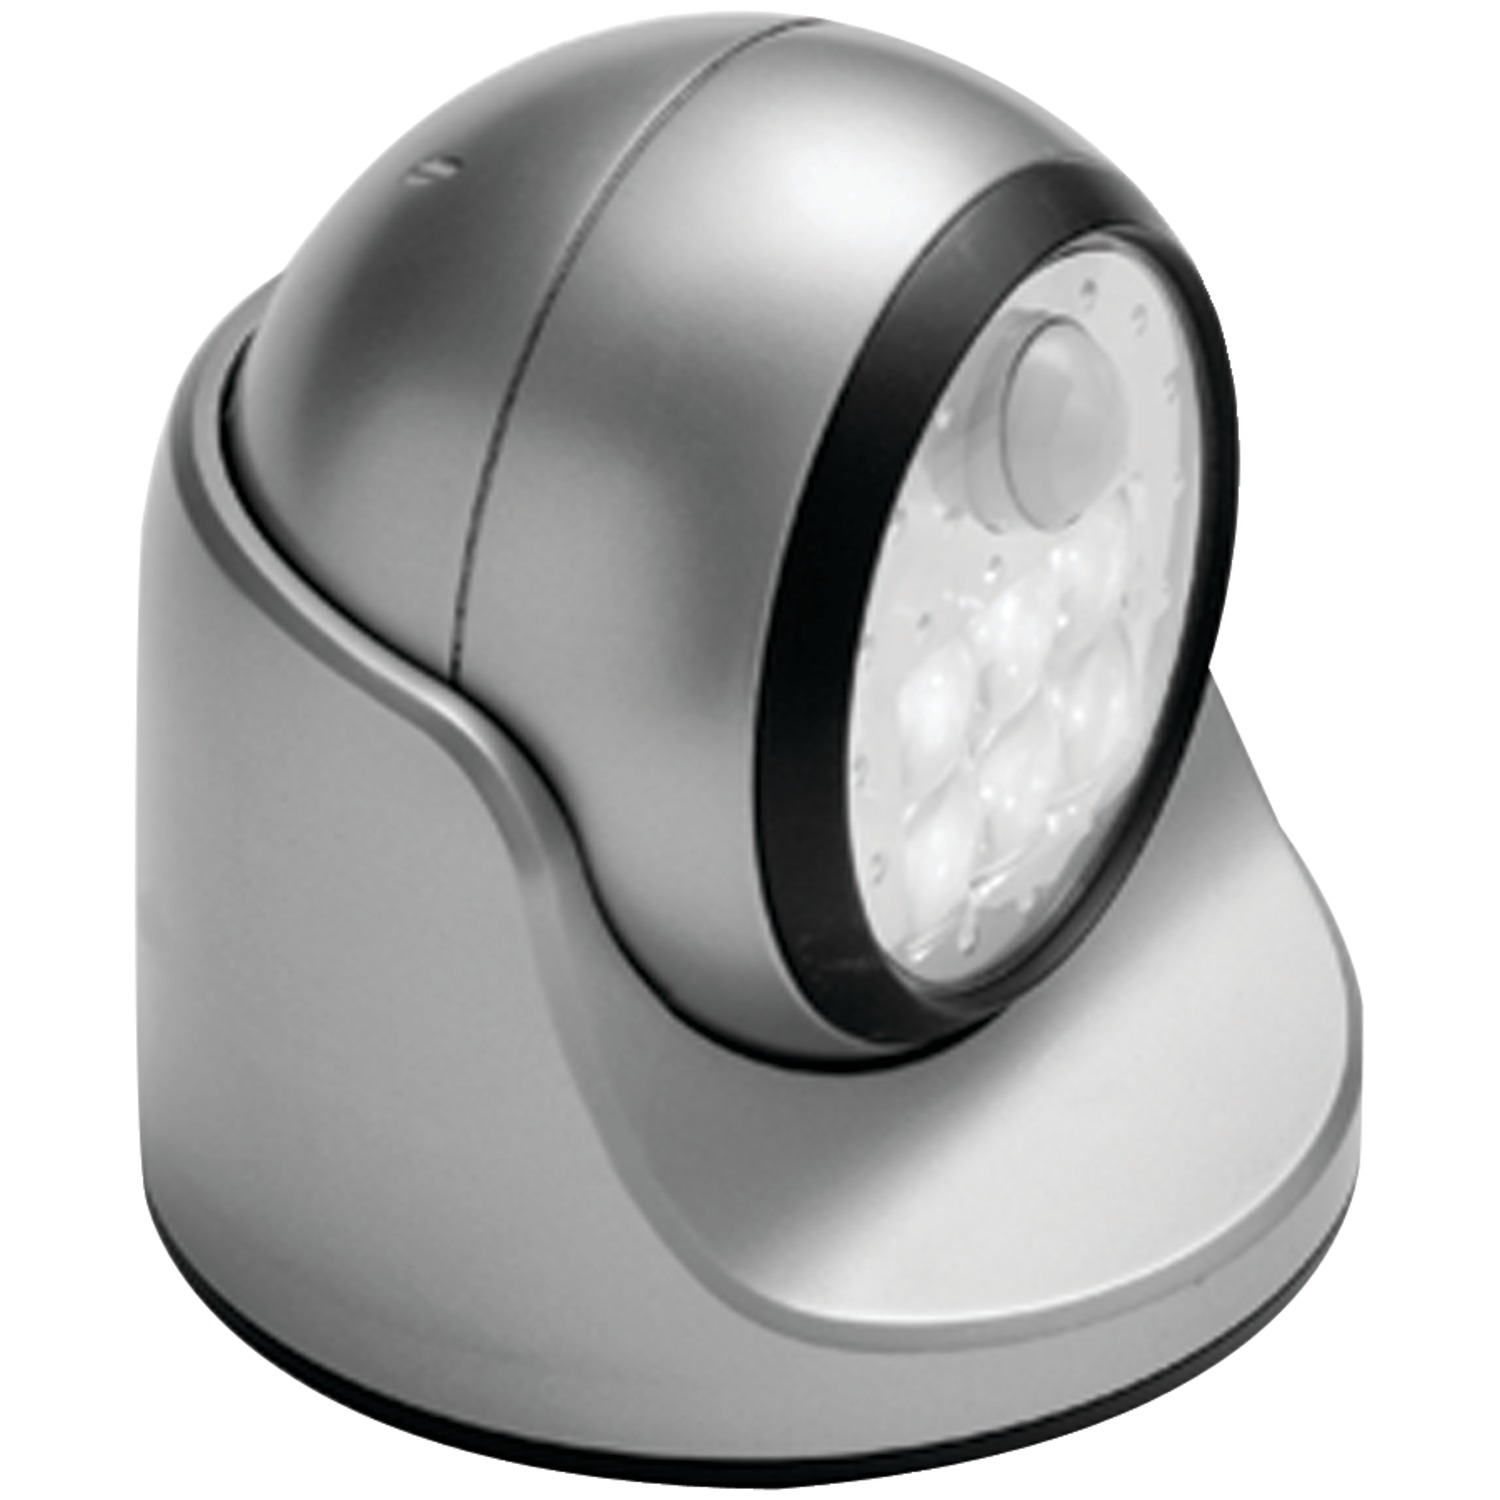 6-led Wireless Porch Light (silver) by FPI